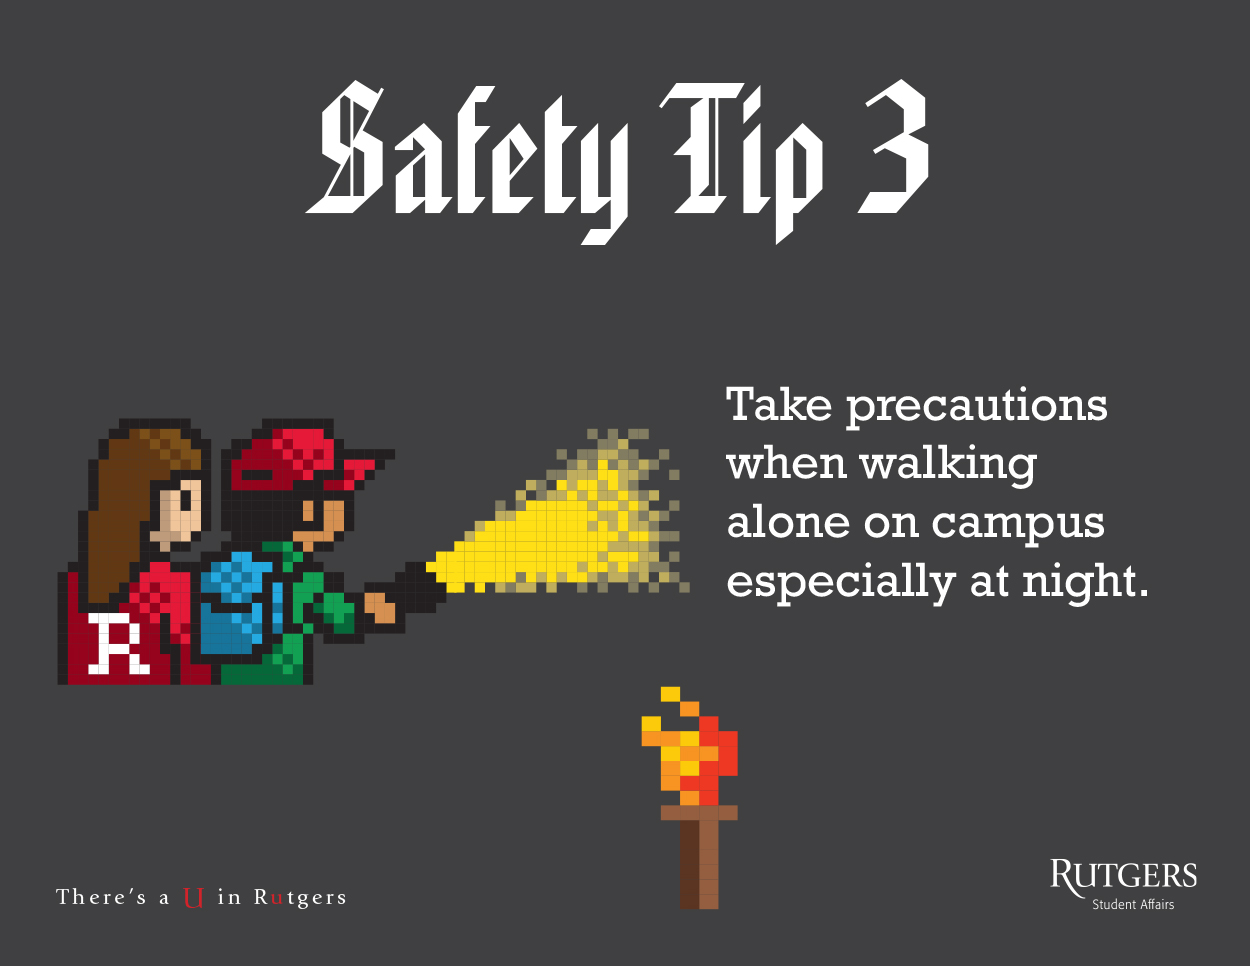 Always take precautions when walking alone on campus - especially at night.